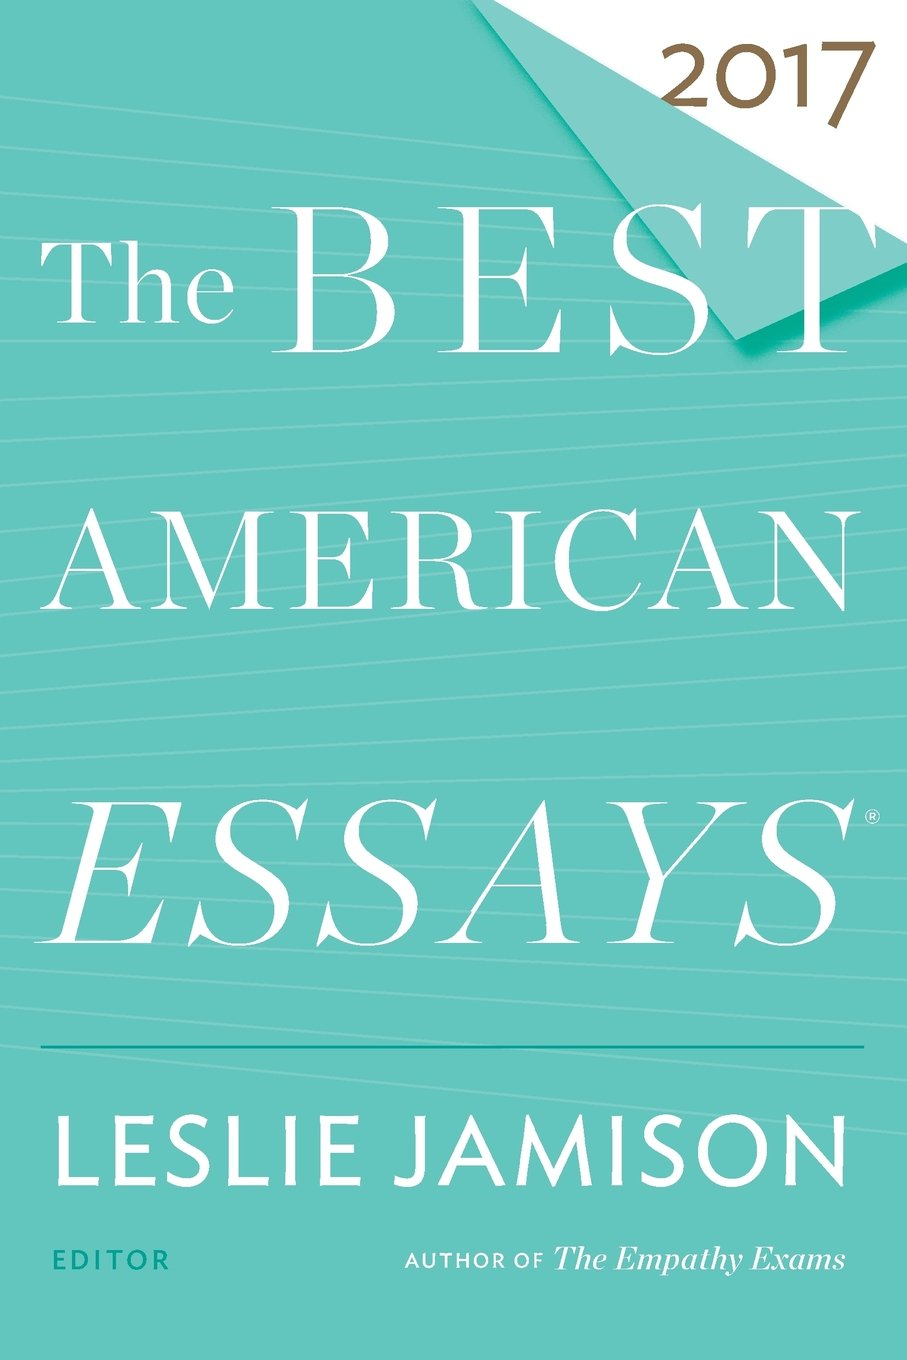 001 61tzl Nruvl Essay Example The Best American Wonderful Essays 2013 Pdf Download Of Century Sparknotes 2017 Full